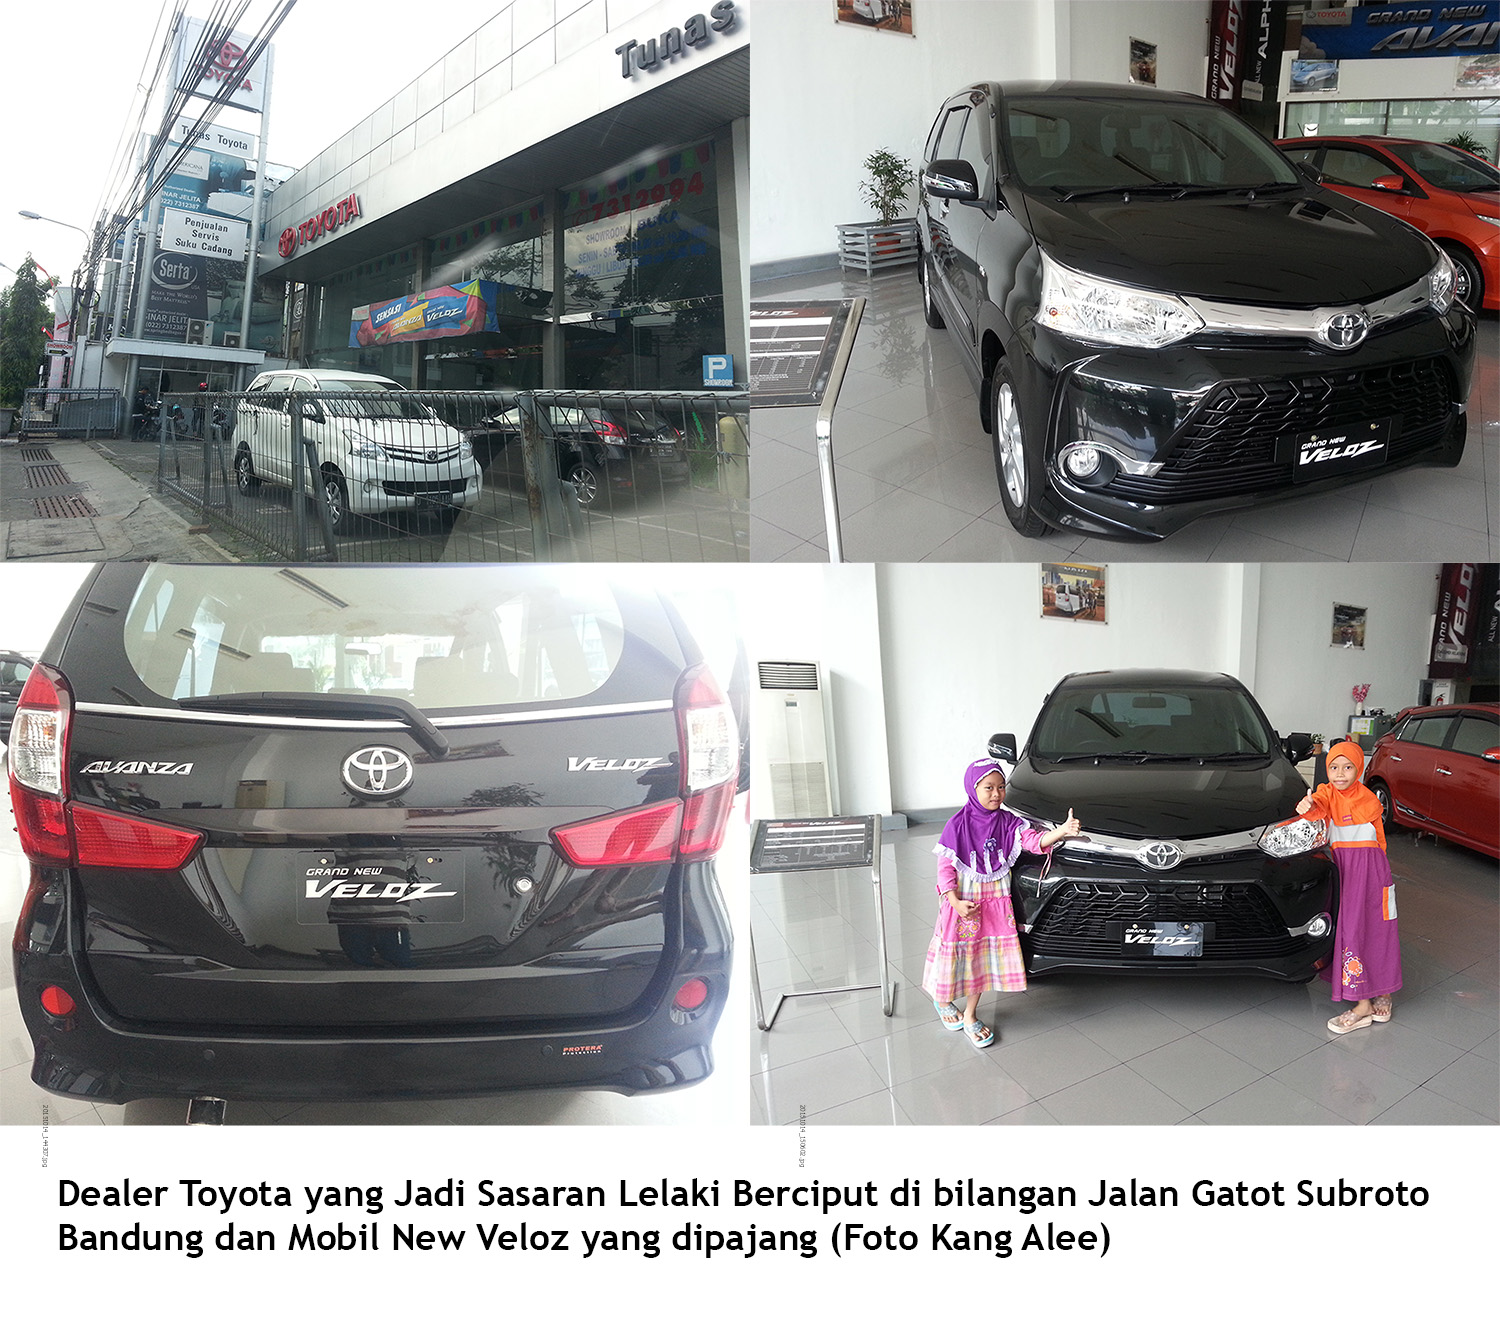 warna grand new avanza dark brown toyota yaris trd exhaust dan veloz mobil keluarga